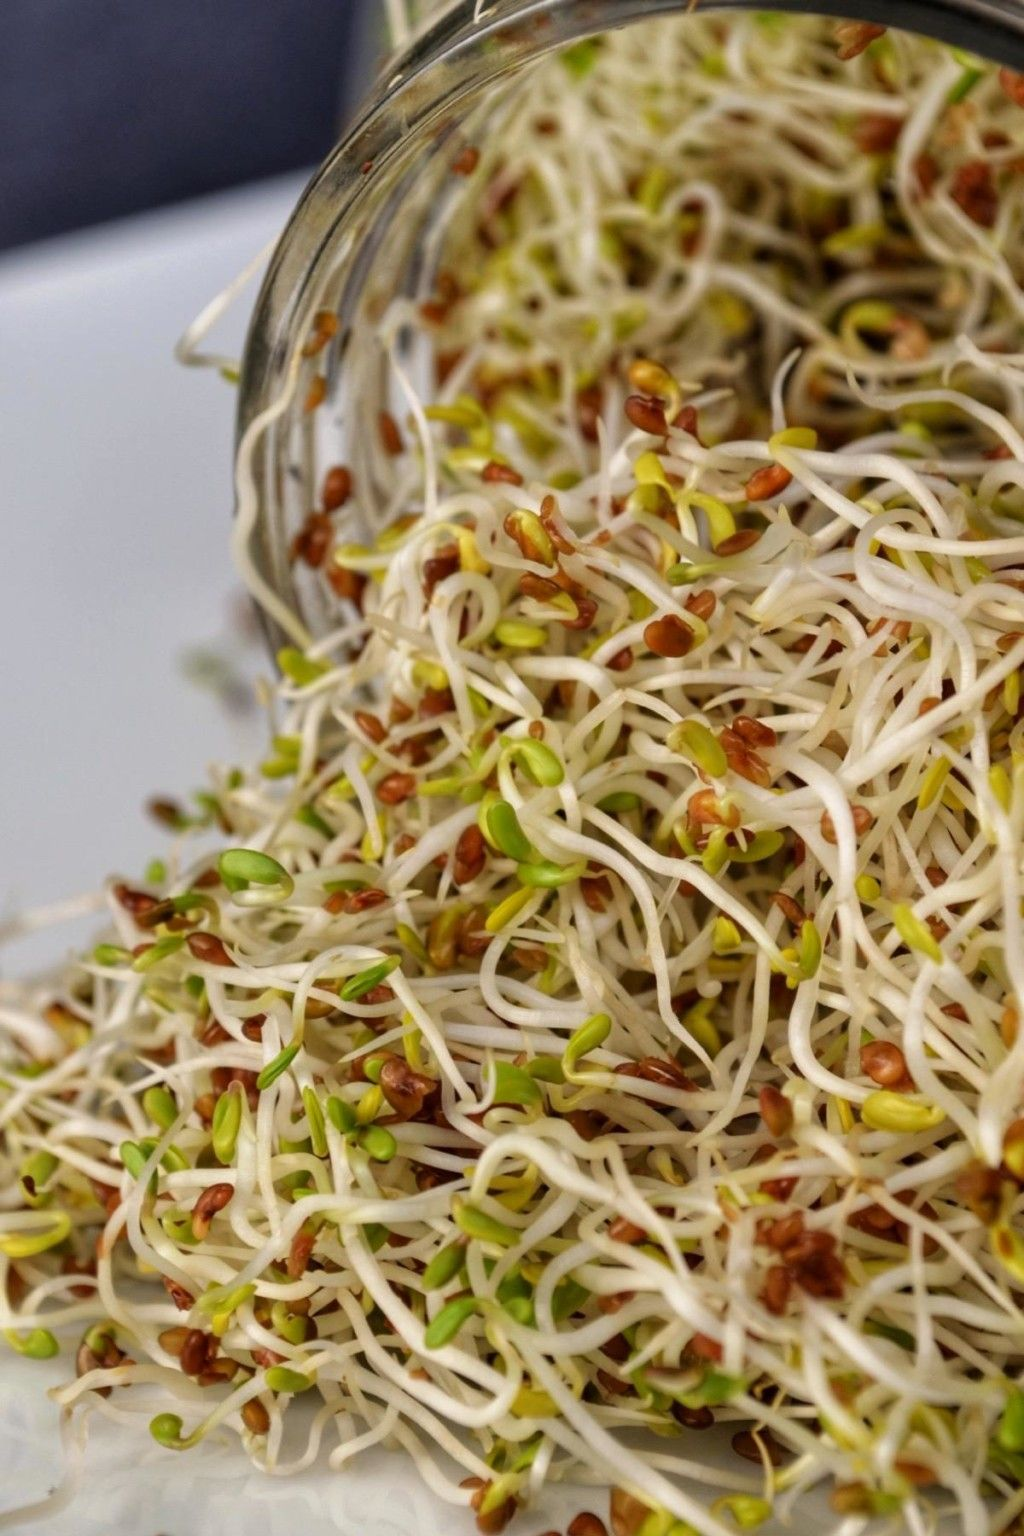 How To Grow Sprouts From Seeds You Will Be So Amazed To See How Quickly They Grow A Great Addition To Sandwiches Sal In 2020 Growing Sprouts Sprouts Sprouting Seeds